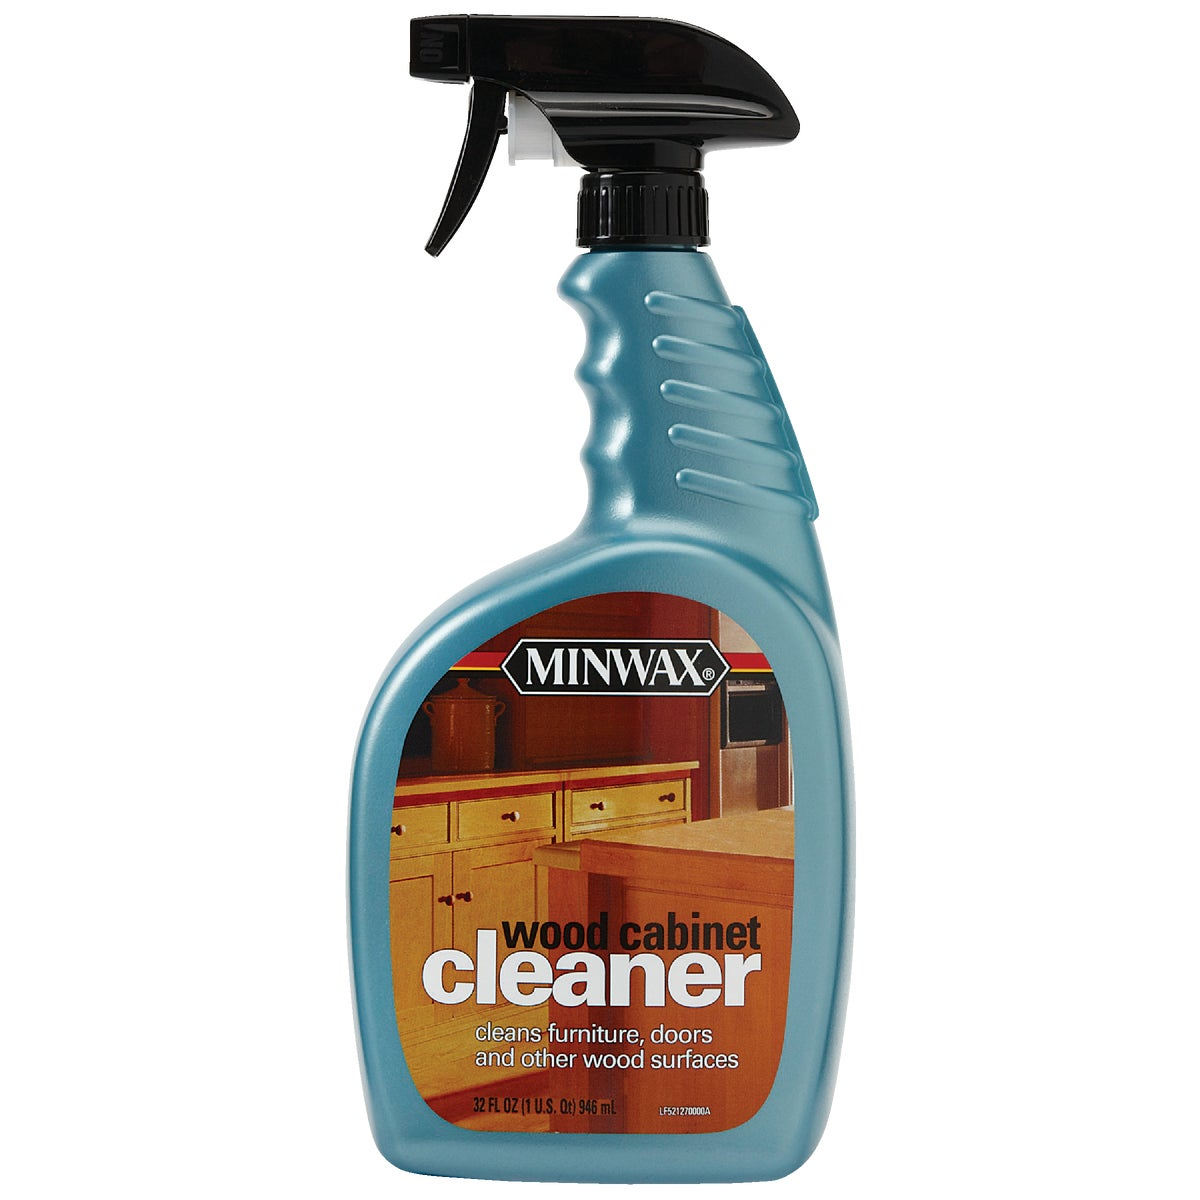 32OZ SPRAY WOOD CLEANER - 521270004 by Minwax Company